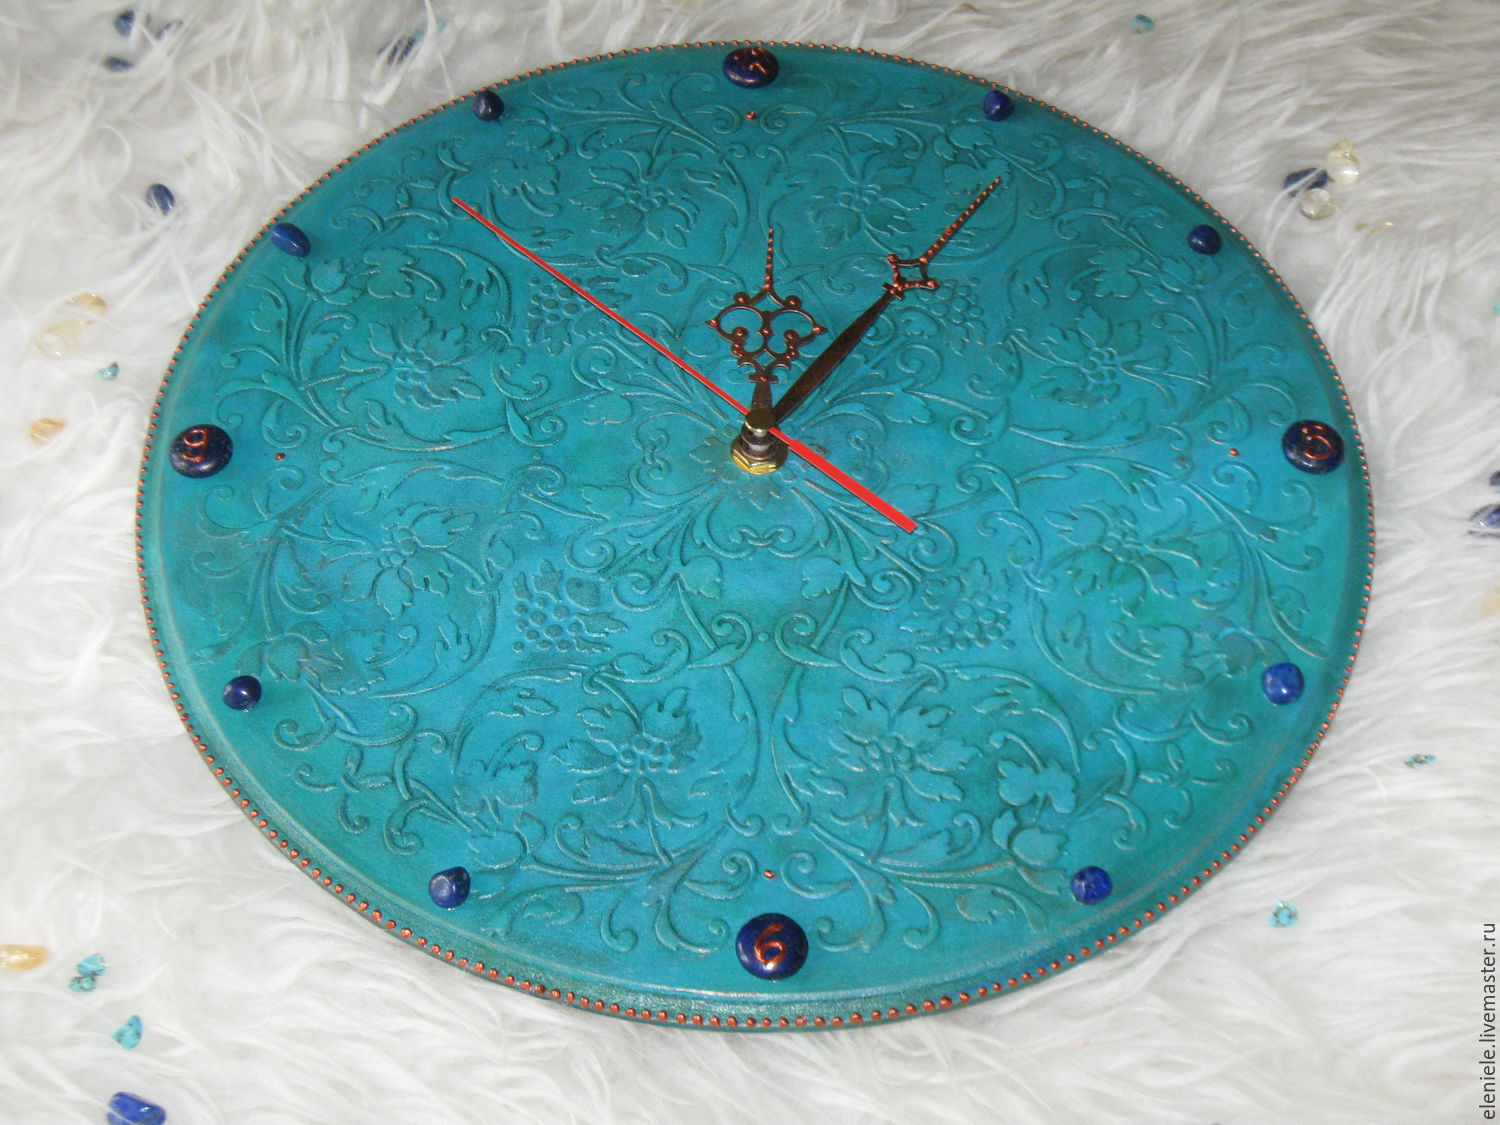 Watch Turquoise mood with lapis lazuli, Watch, Moscow,  Фото №1